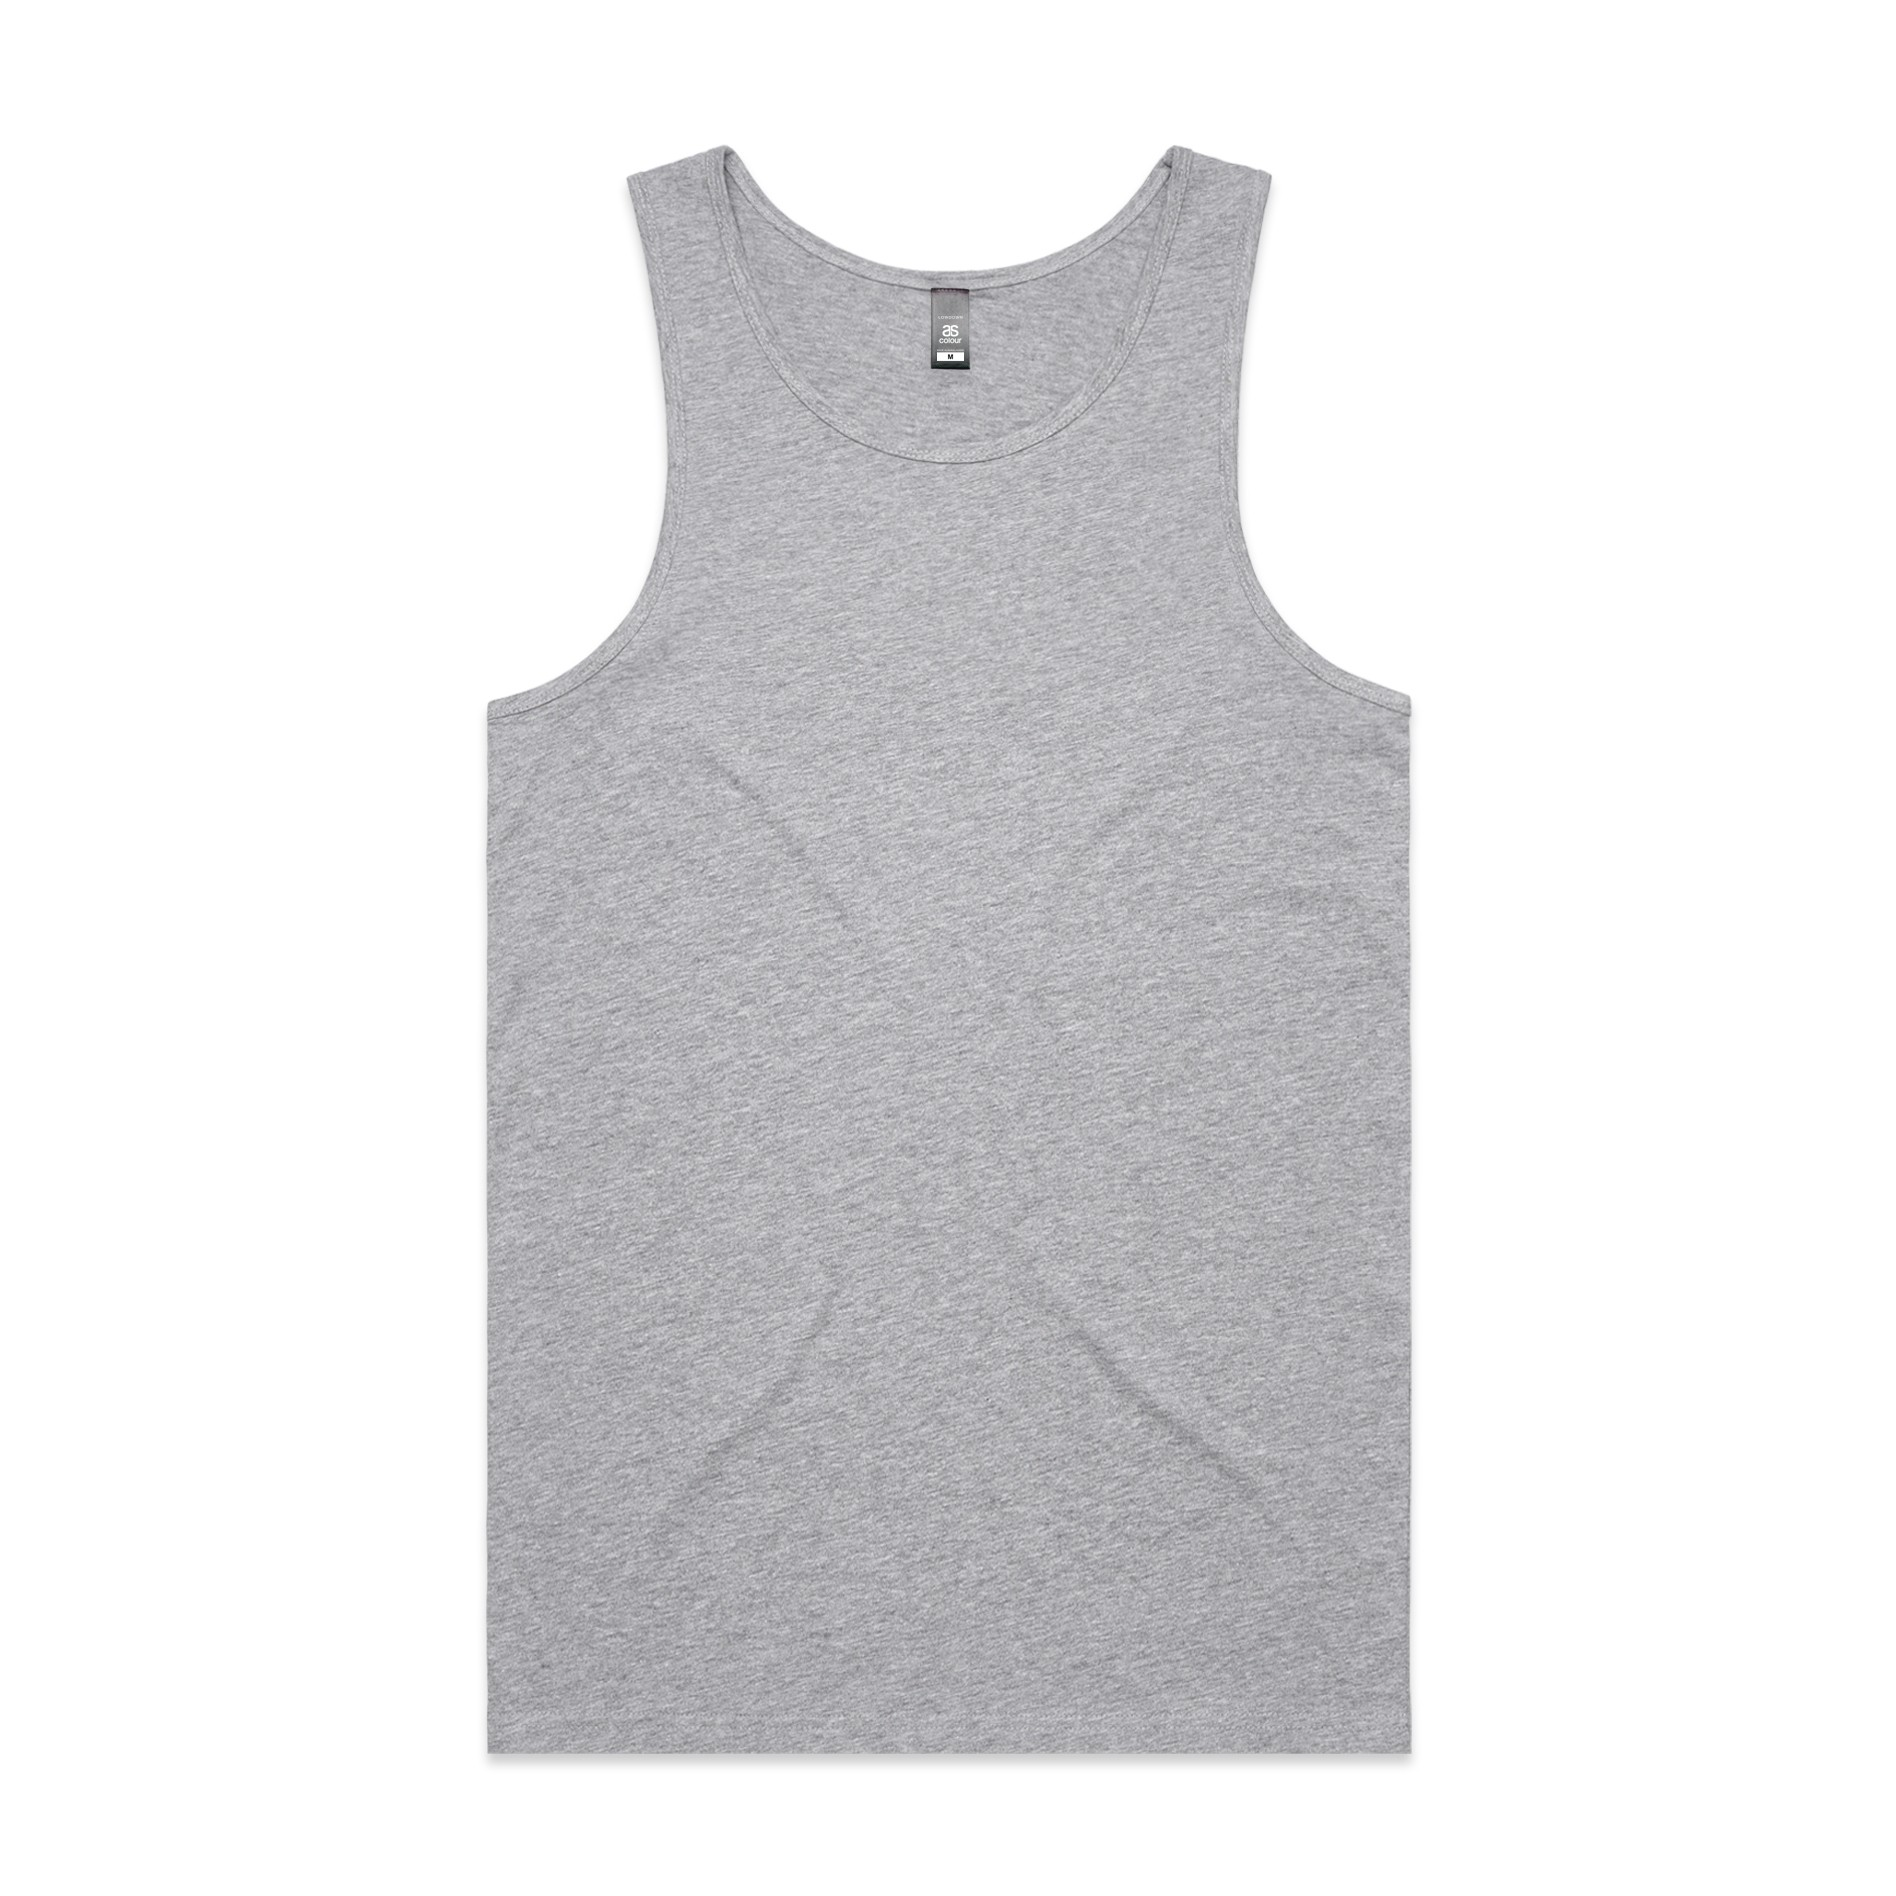 Mens Lowdown Singlet 5007 - Regular Fit | Regular Shape | Light-Weight | 150 gsm | 100% Combed Cotton | Preshrunk | 6 Colours